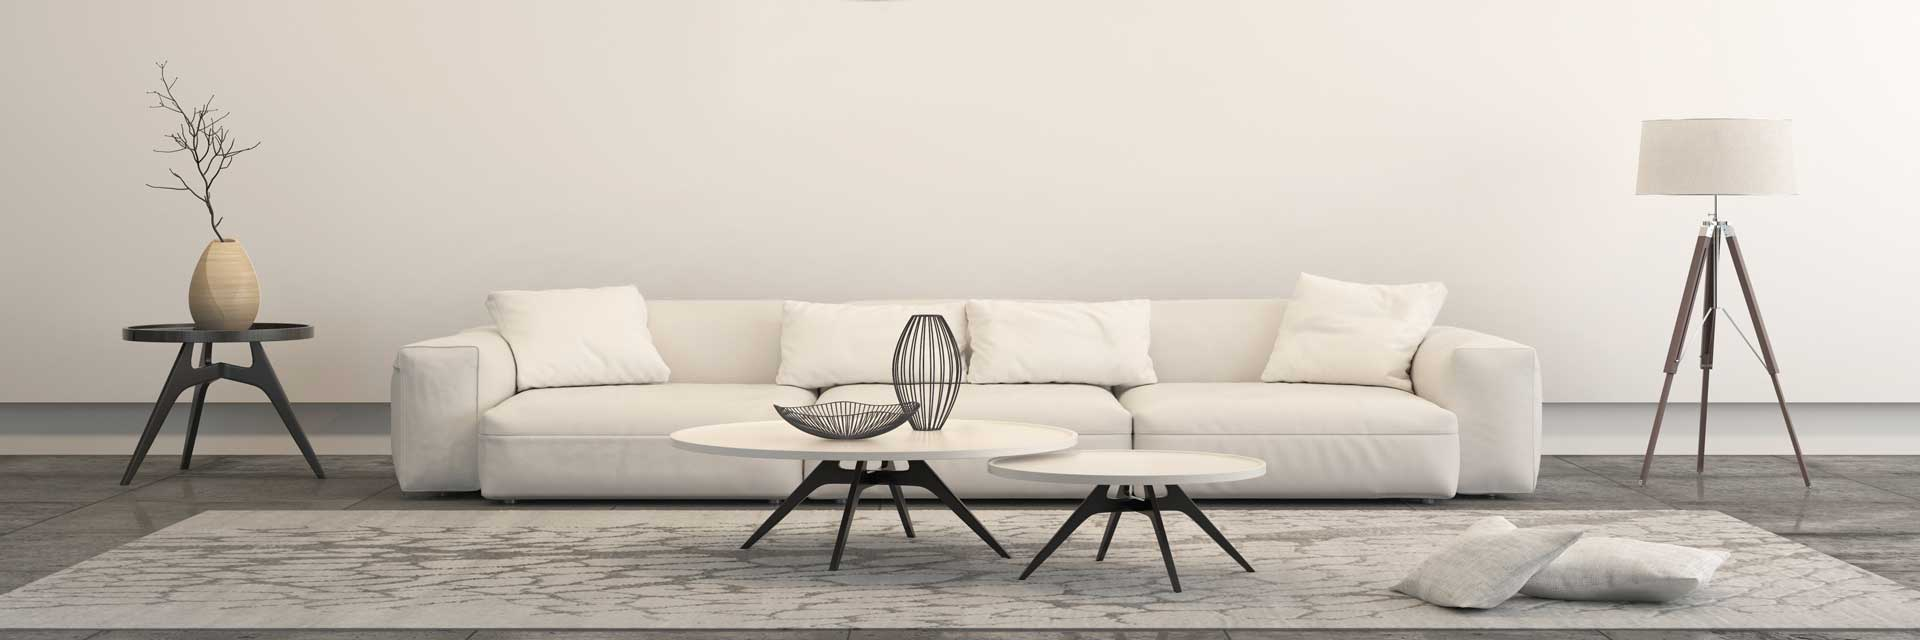 Home Staging Preise staging leistungen preise home staging hamburg amendis